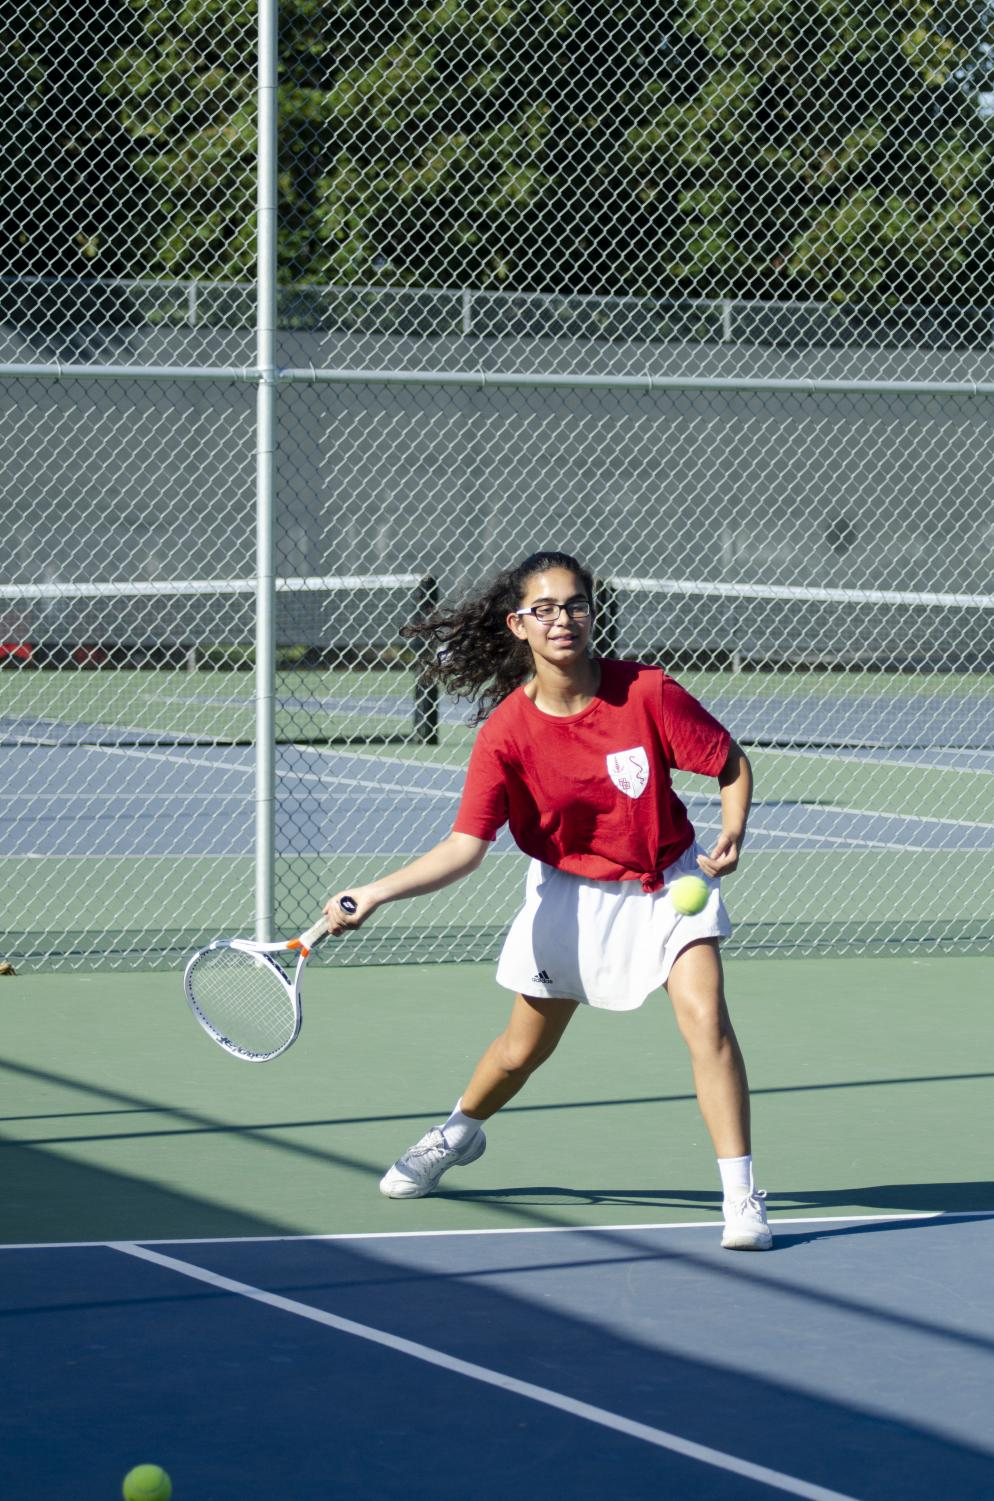 Arissa+Huda+%289%29+practices+at+the+Blackford+tennis+courts.+